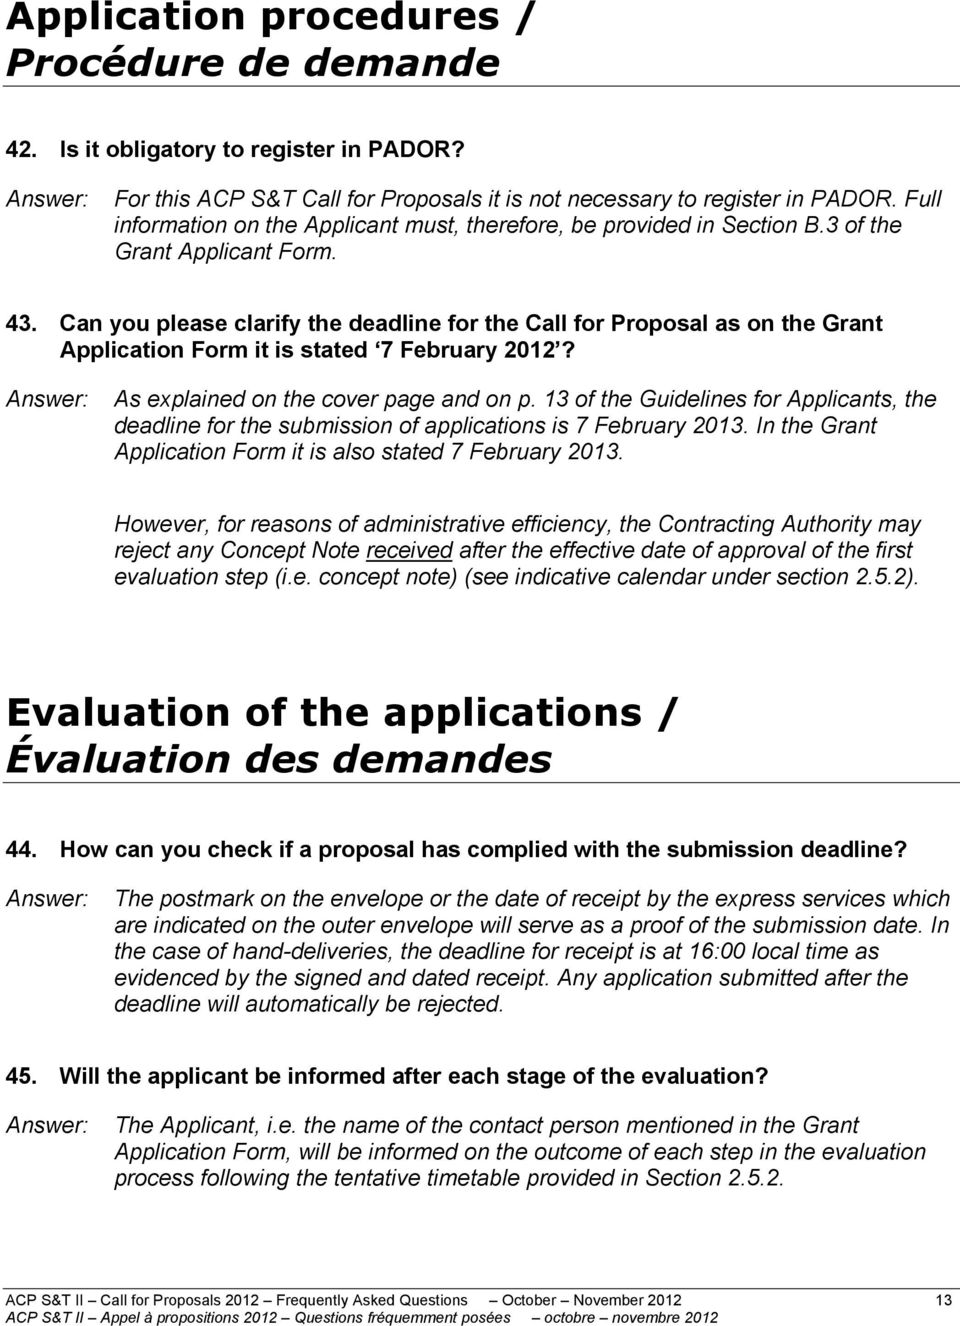 Can you please clarify the deadline for the Call for Proposal as on the Grant Application Form it is stated 7 February 2012? As explained on the cover page and on p.